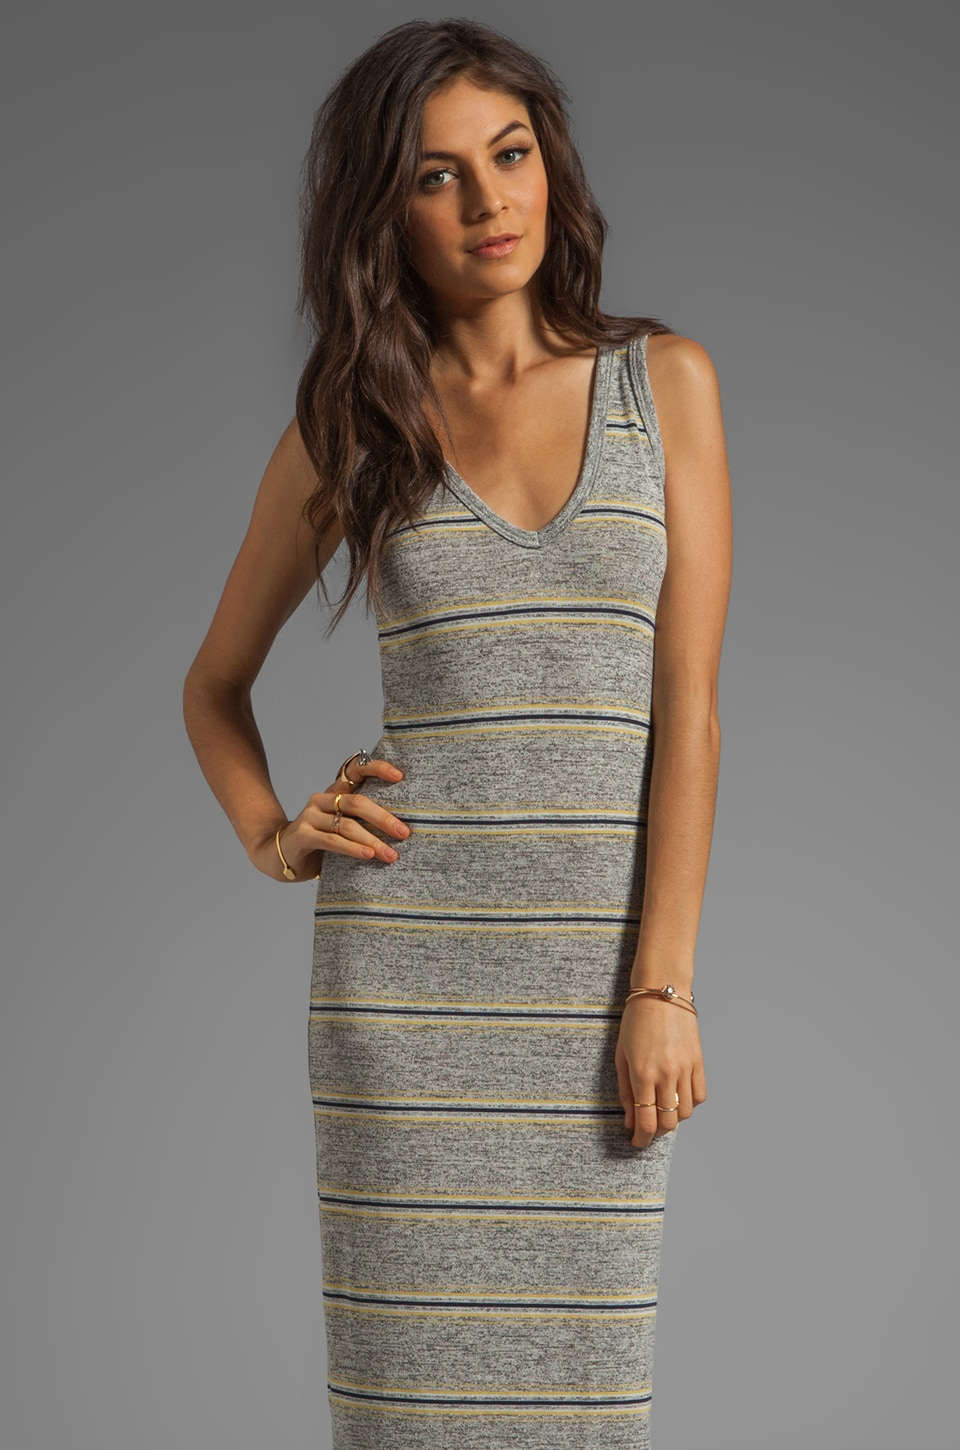 Saint Grace Ciaro V Maxi Dress in Lemon